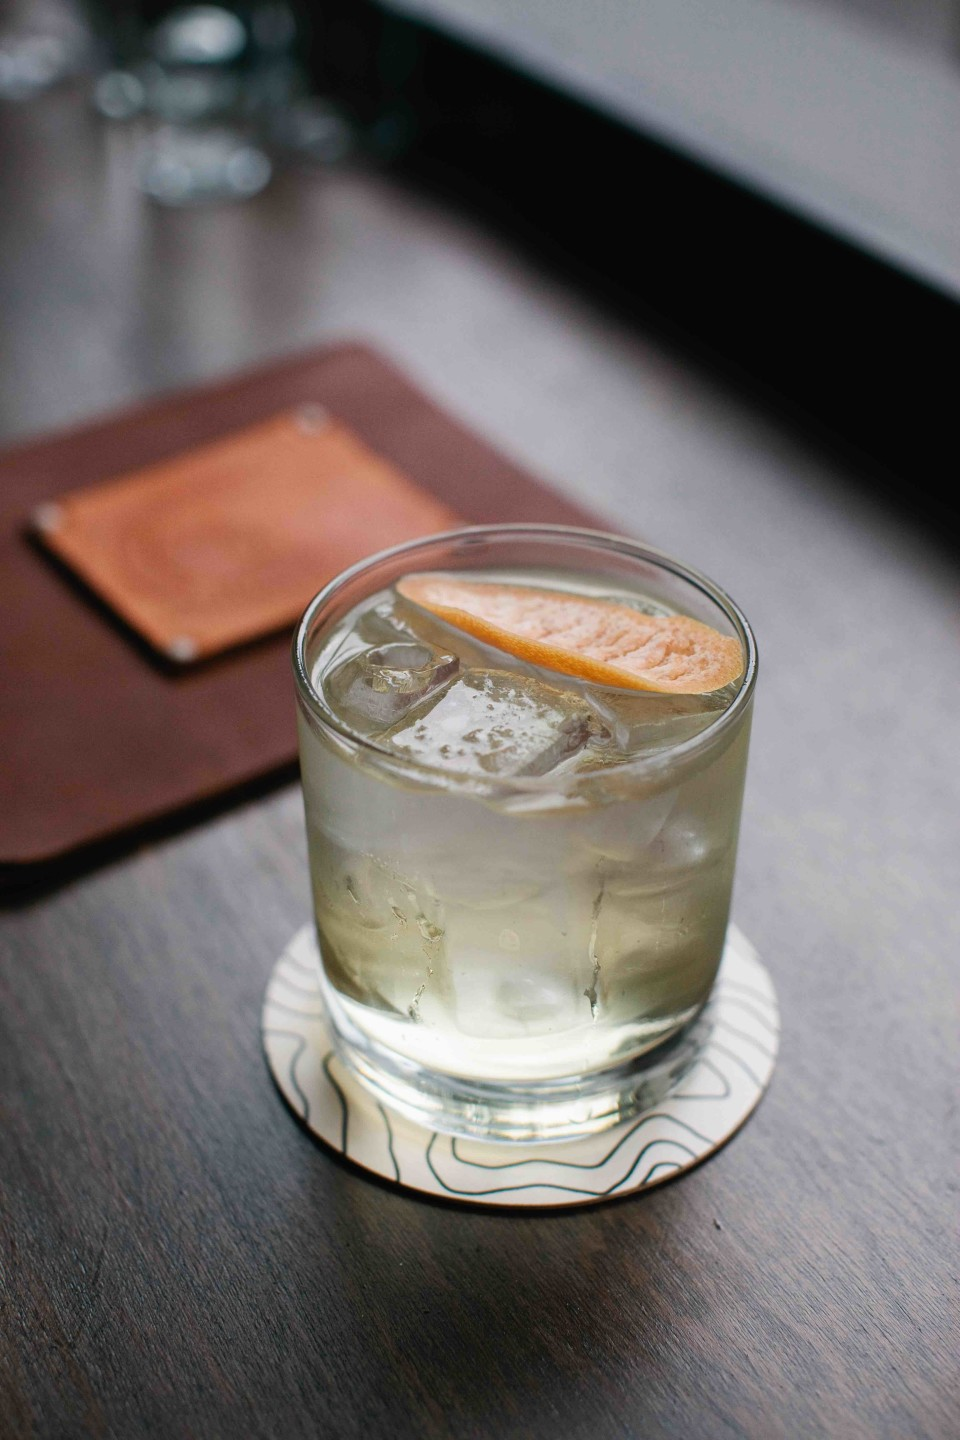 Portland Hunt & Alpine Club serves approachable craft cocktails highlighting local spirits like the White Noise.